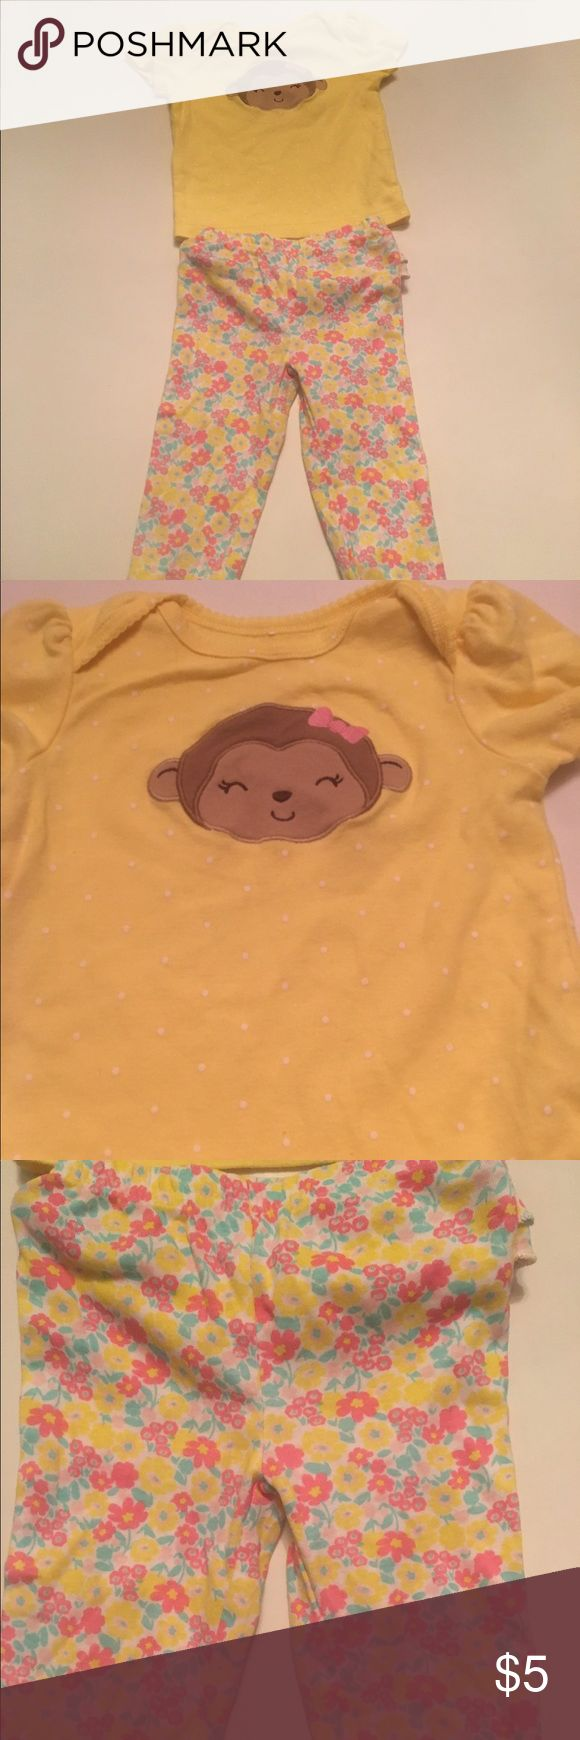 2pc monkey set Yellow short sleeve top with monkey and white polka dots. Matching floral print leggings with ruffles on back. Gently worn, good condition child of mine Matching Sets